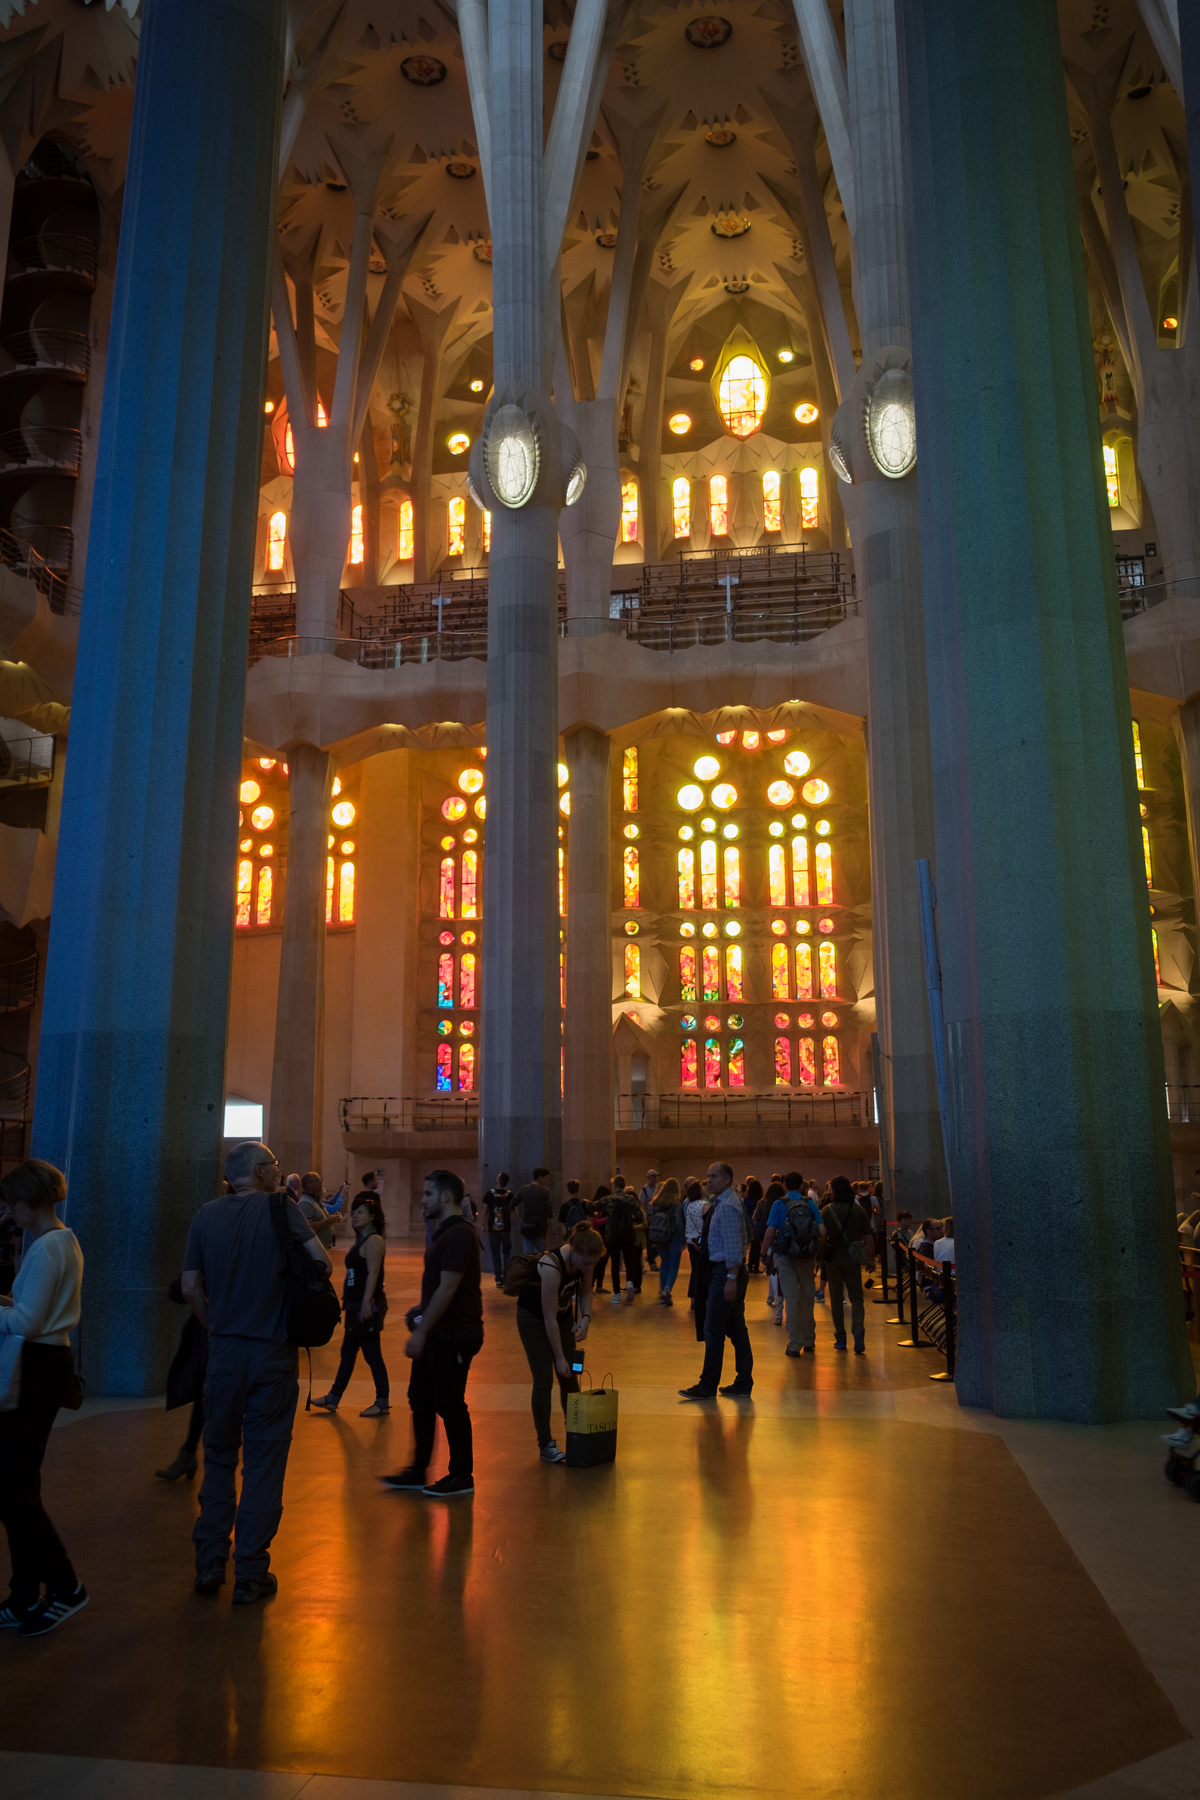 Back inside La Sagrada Familia